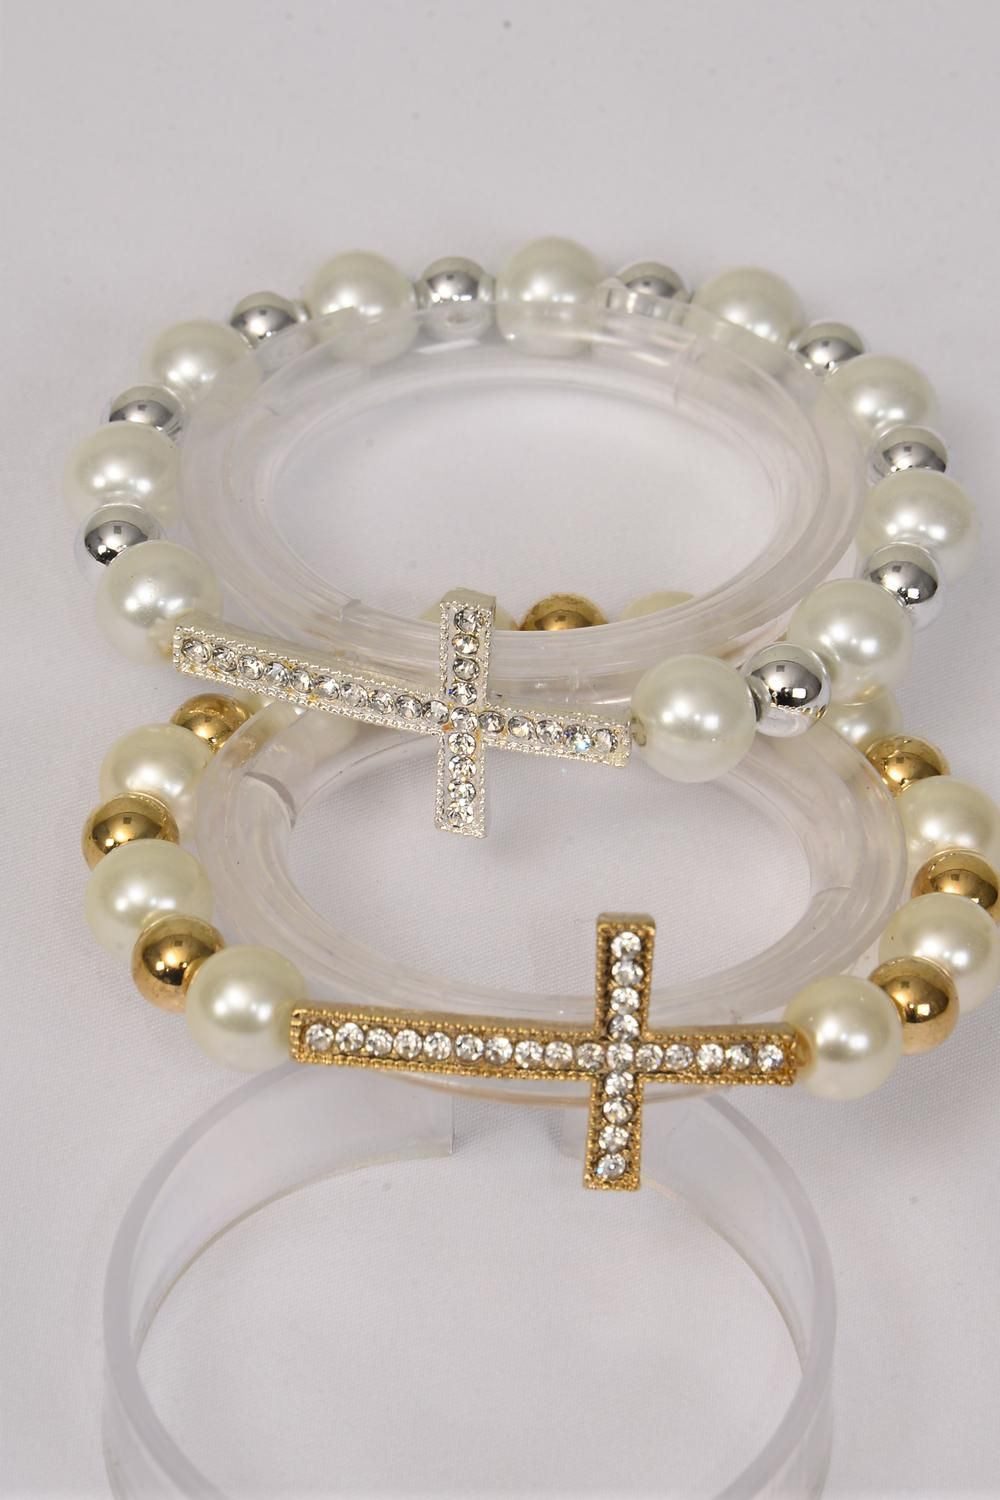 "Bracelet Side Way Cross Rhinestone 12 mm Glass Pearl & 8 mm CCB Stretch/DZ **Stretch** Cross Size-1.5""x 1"" Wide,6 Cream, 6 Silver white Pearl Mix,Hang Tag & OPP bag & UPC Code -"